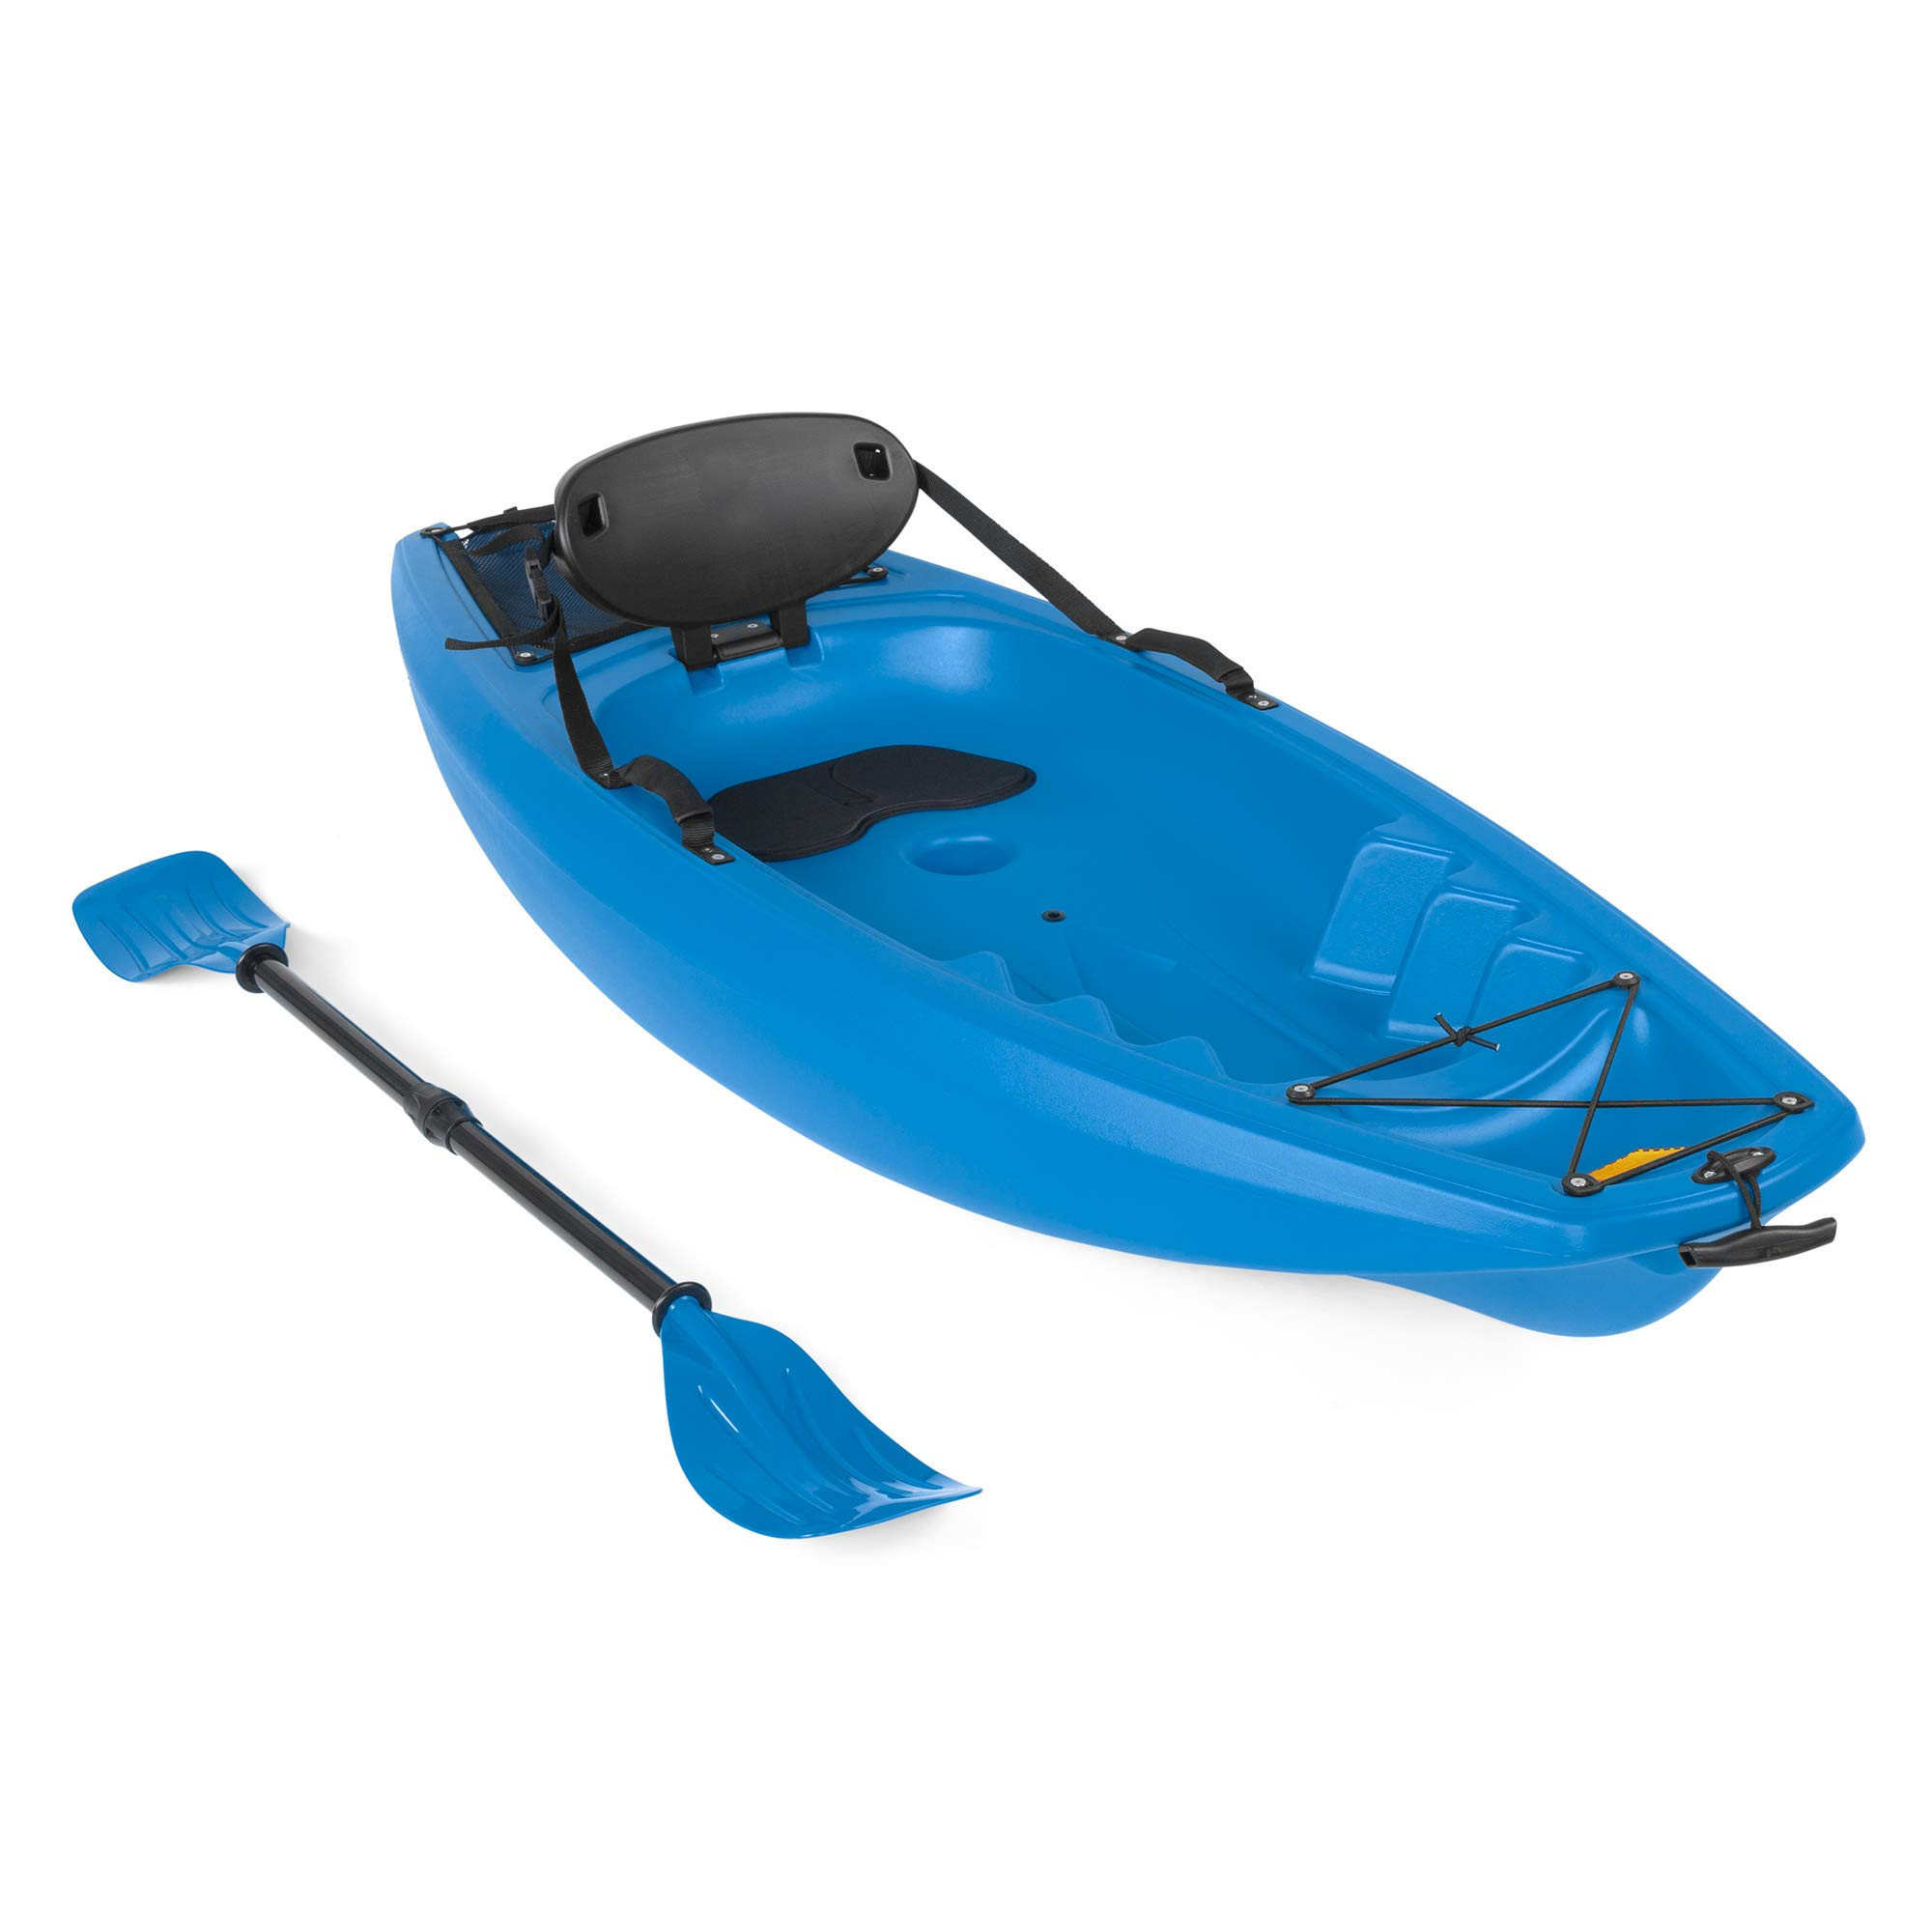 Best Choice Products Sports 6' Kids Kayak with Paddle and Backrest- Blue by Best Choice Products